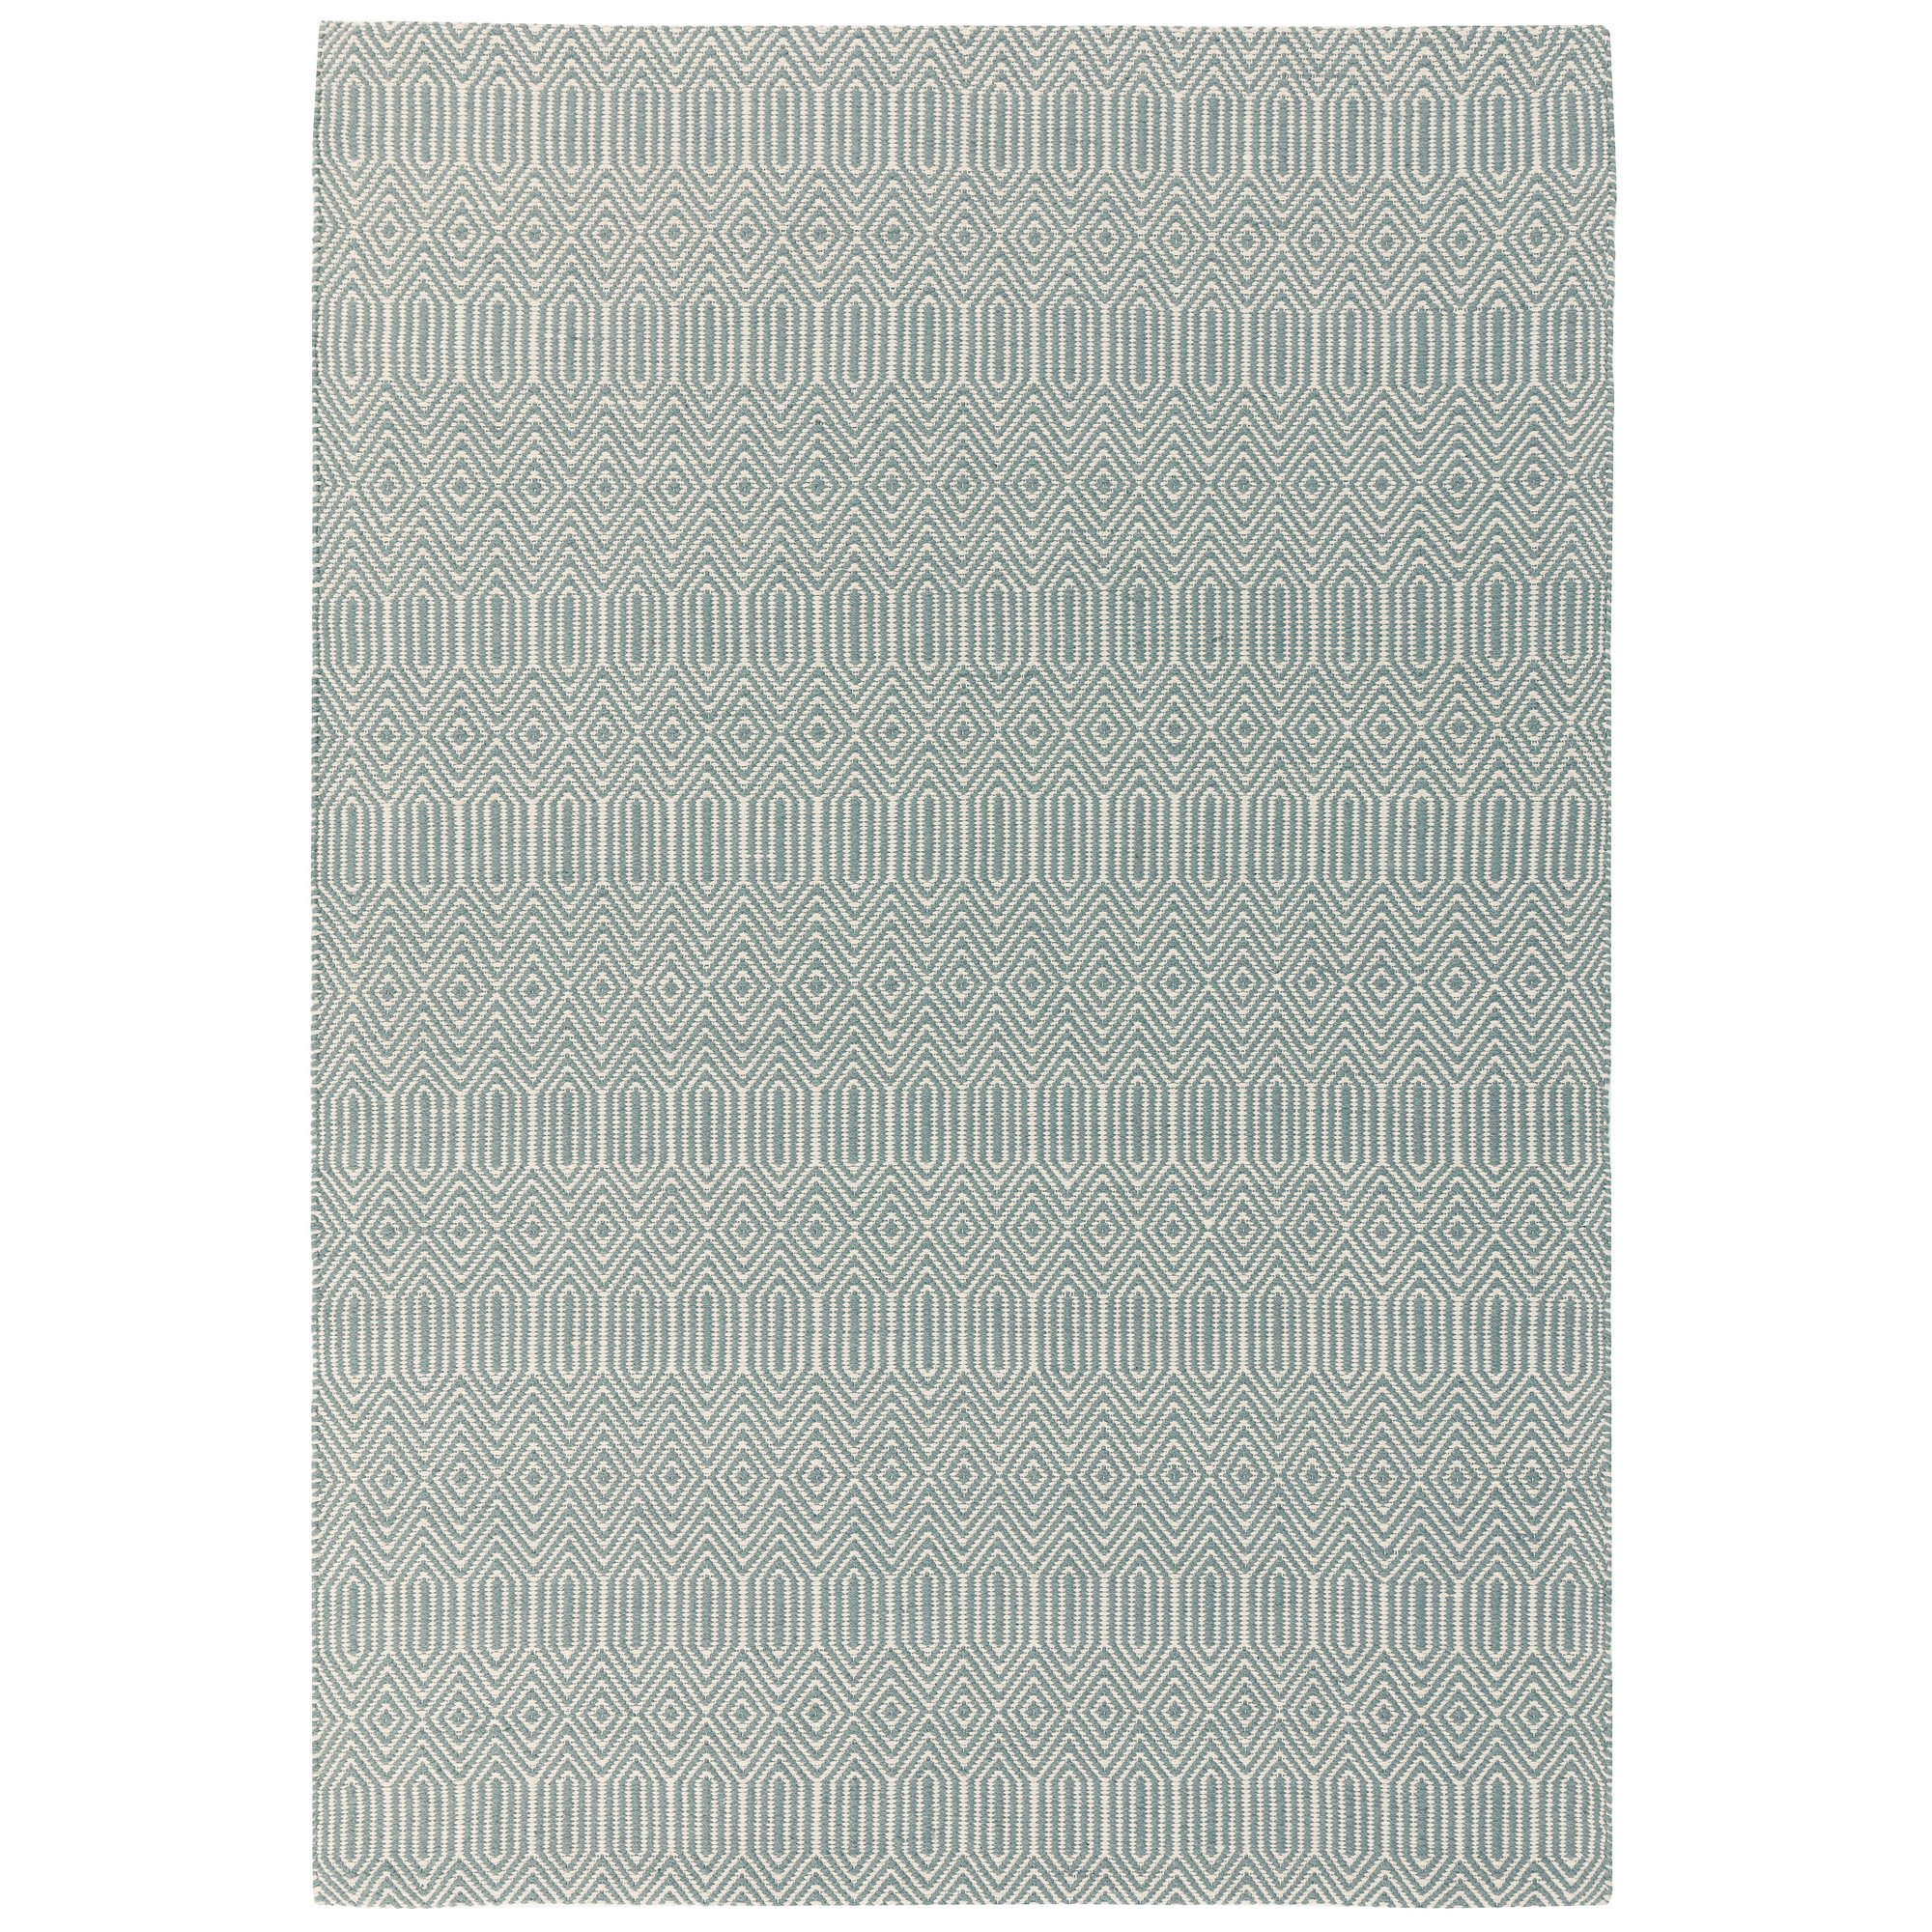 Sloan Rugs in Duck Egg